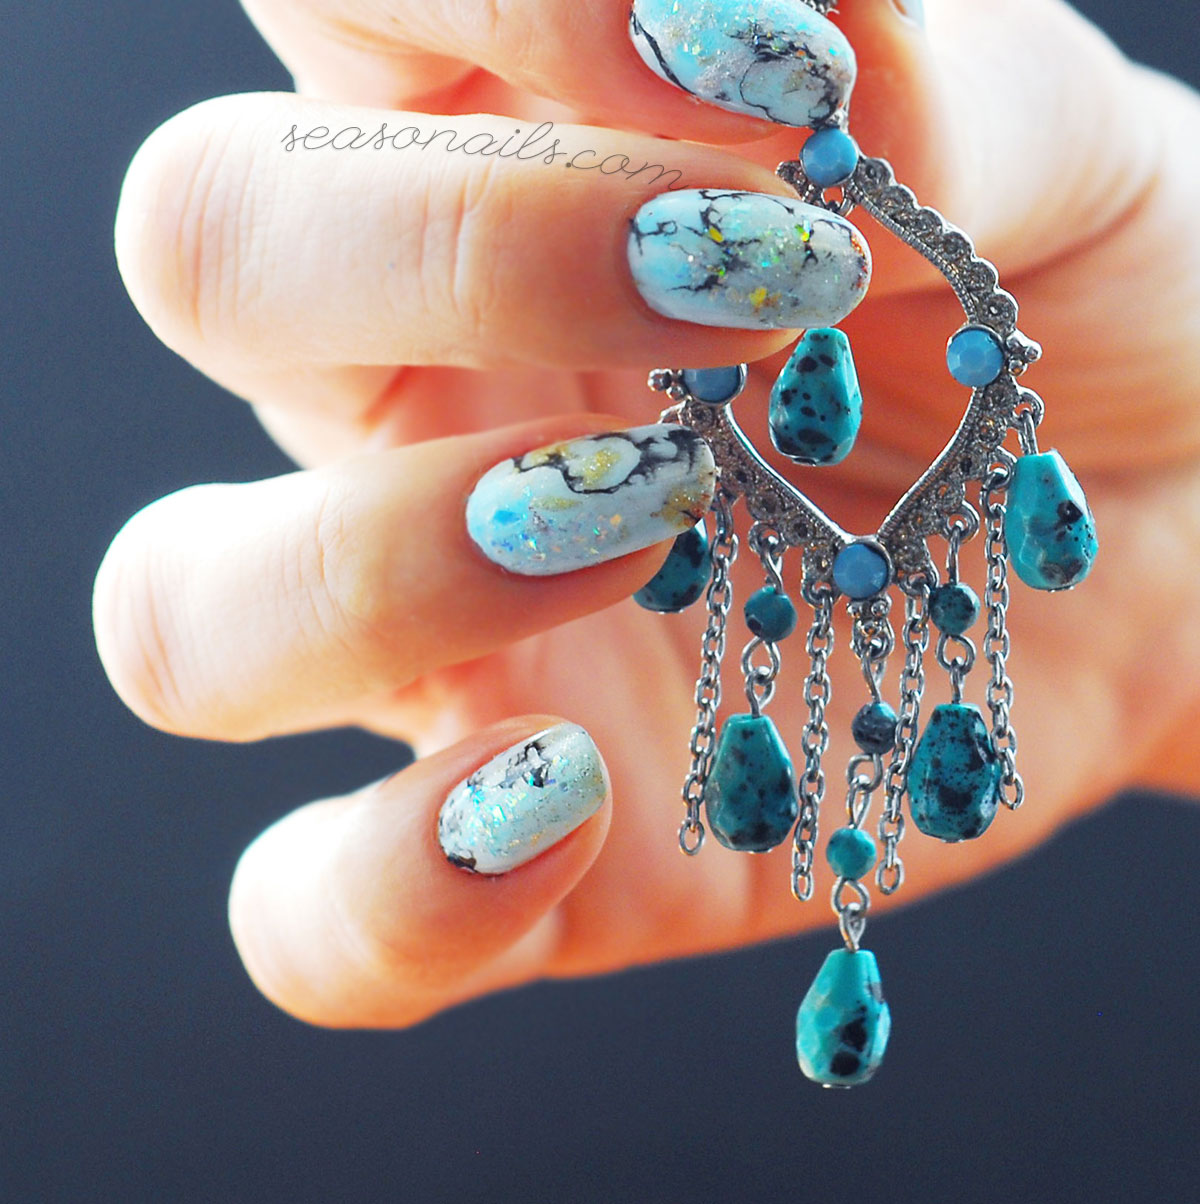 blue stone marbled nails